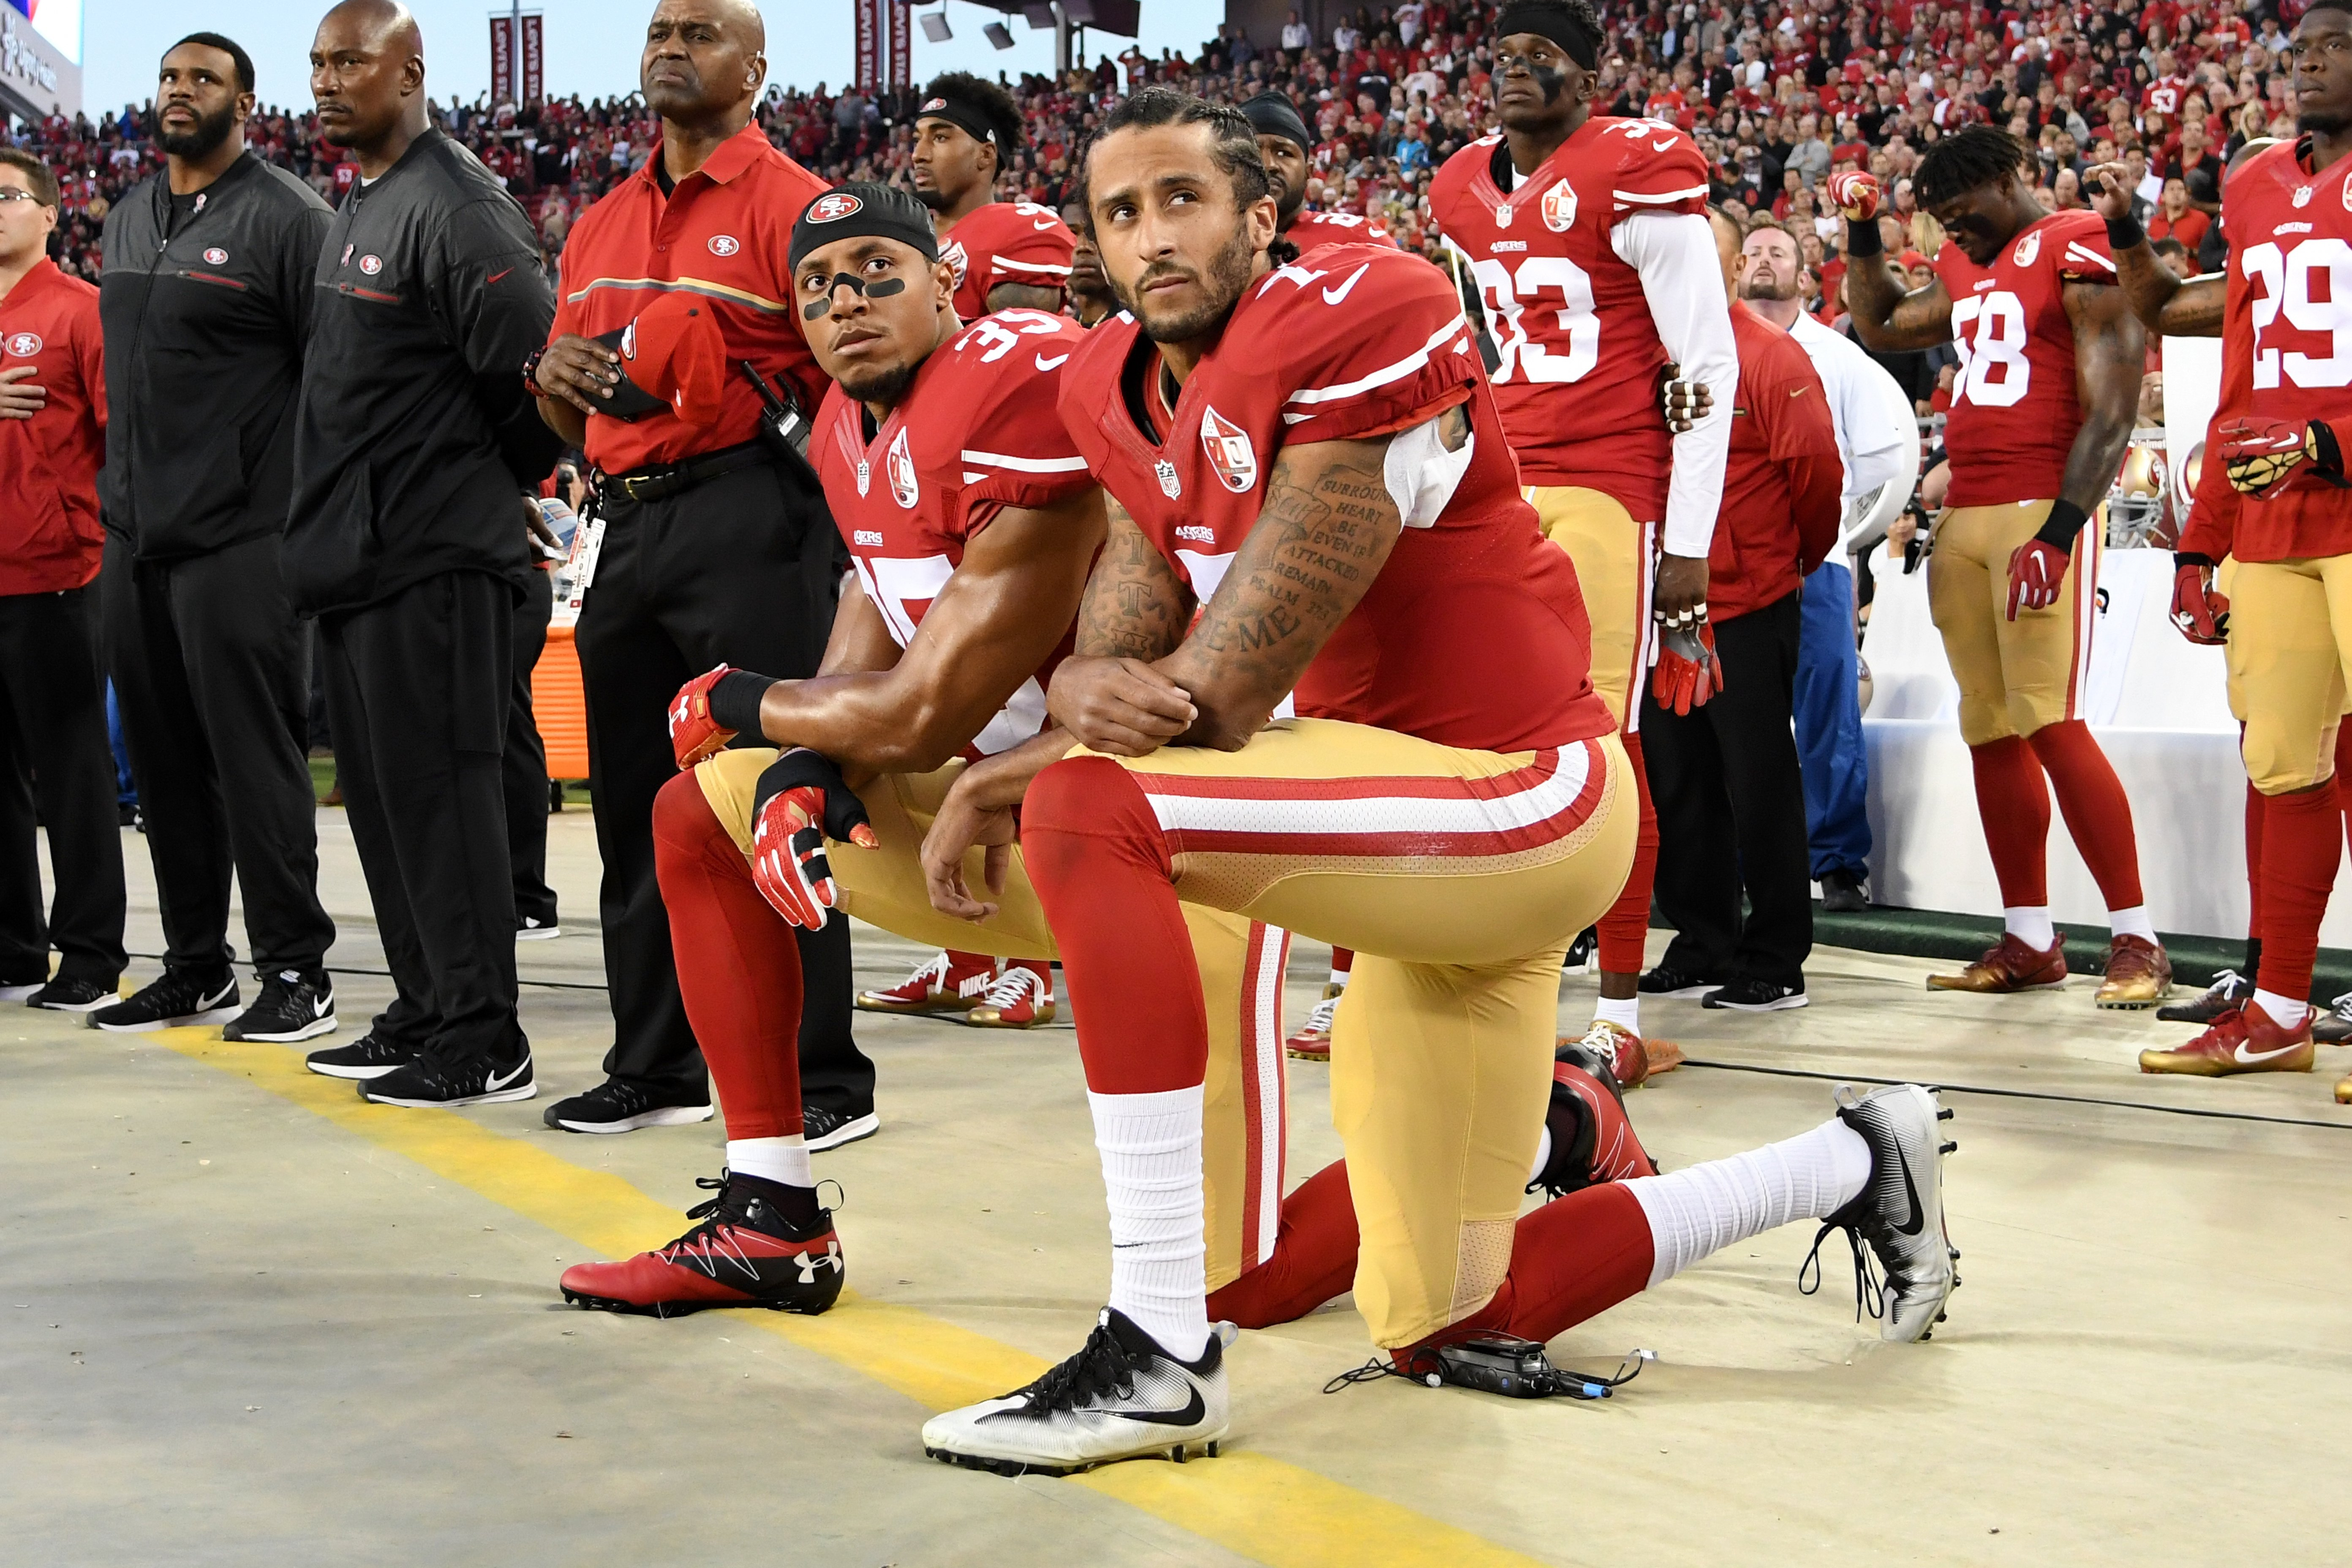 To knee or not to knee: Quarterback's protest sparks debate over racism and patriotism